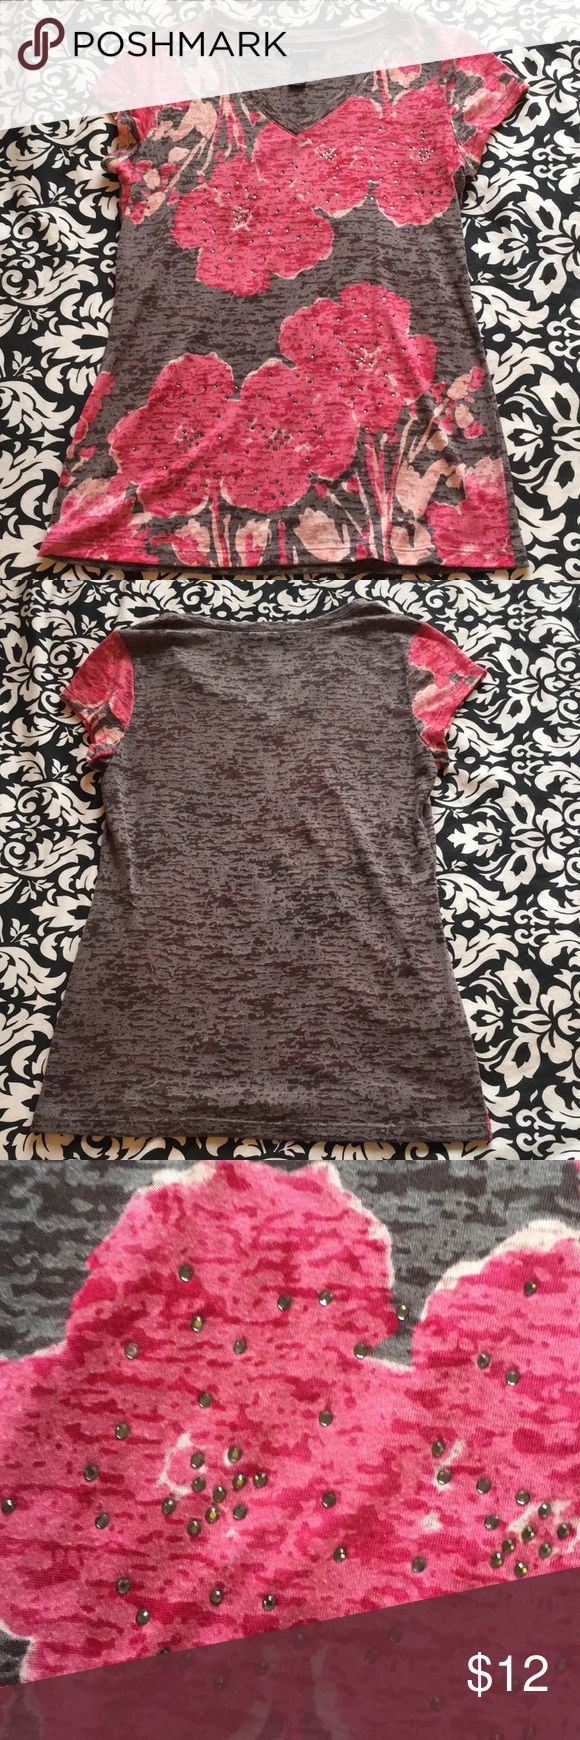 INC GRAY AND PINK SHORT SLEEVE TOP Great condition. Size M INC International Concepts Tops Tees - Short Sleeve